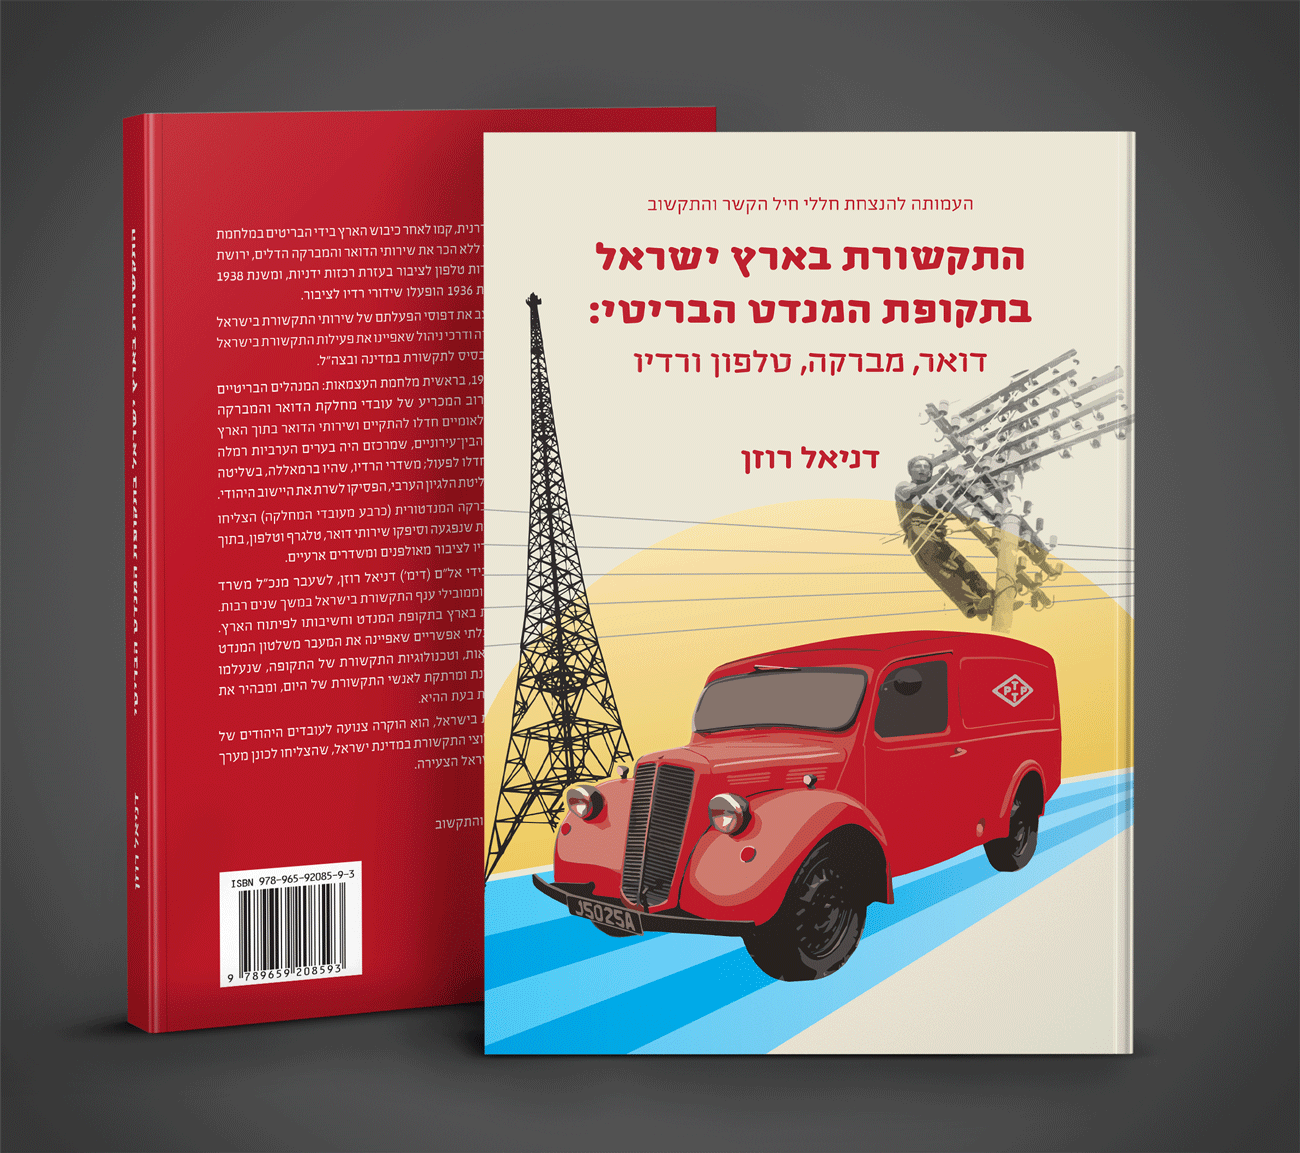 https://bigeyes.co.il/wp-content/uploads/2019/07/communications-book-cover.png